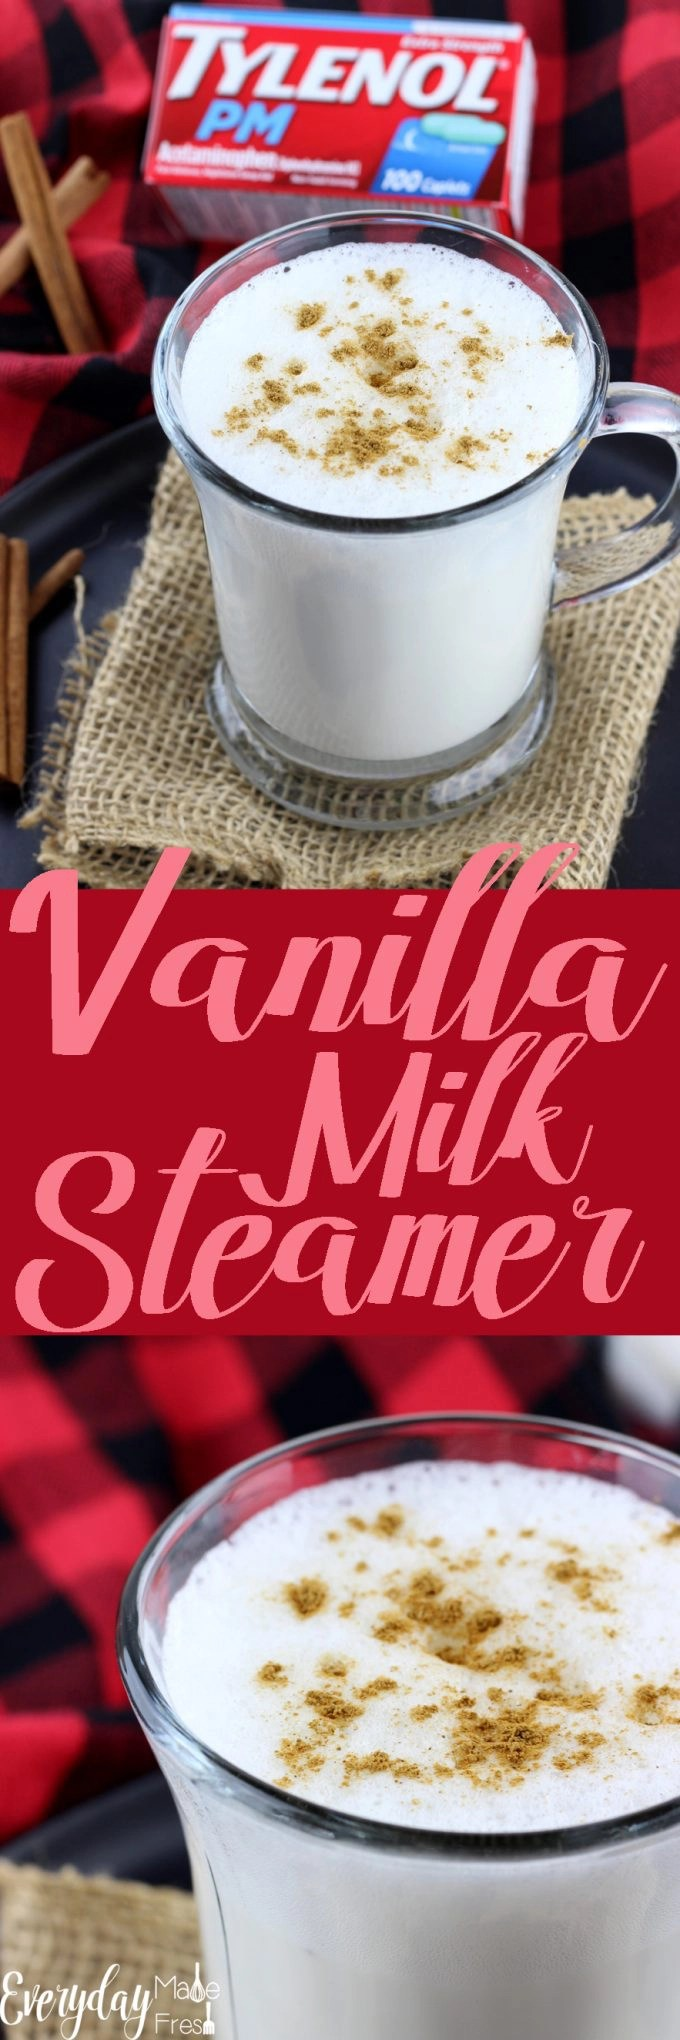 # ad A Vanilla Milk Steamer is the perfect little drink to enjoy before bedtime. A dash of sugar, a splash of vanilla, and a sprinkle of cinnamon make this simple and tasty. Learn more about TYLENOL® PM at Walgreens on the blog! #ForBetterTomorrows #BetterTomorrows #FallBack | EverydayMadeFresh.com